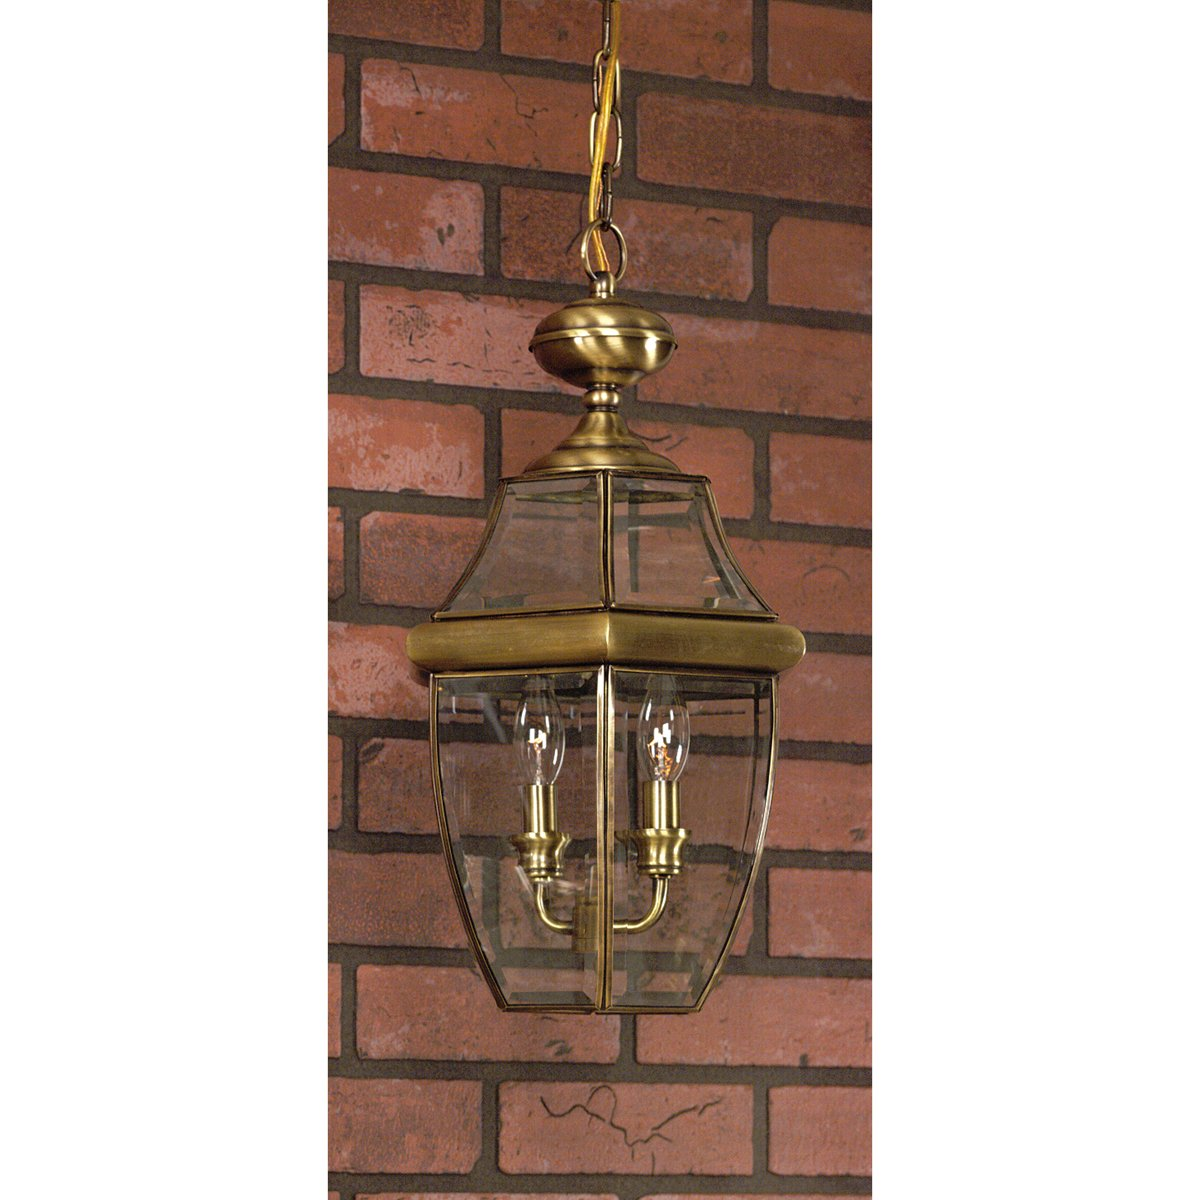 Quoizel NY1179A Newbury Outdoor Pendant Lantern Ceiling Lighting, 3-Light, 180 Watts, Antique Brass (21''H x 13''W) by Quoizel